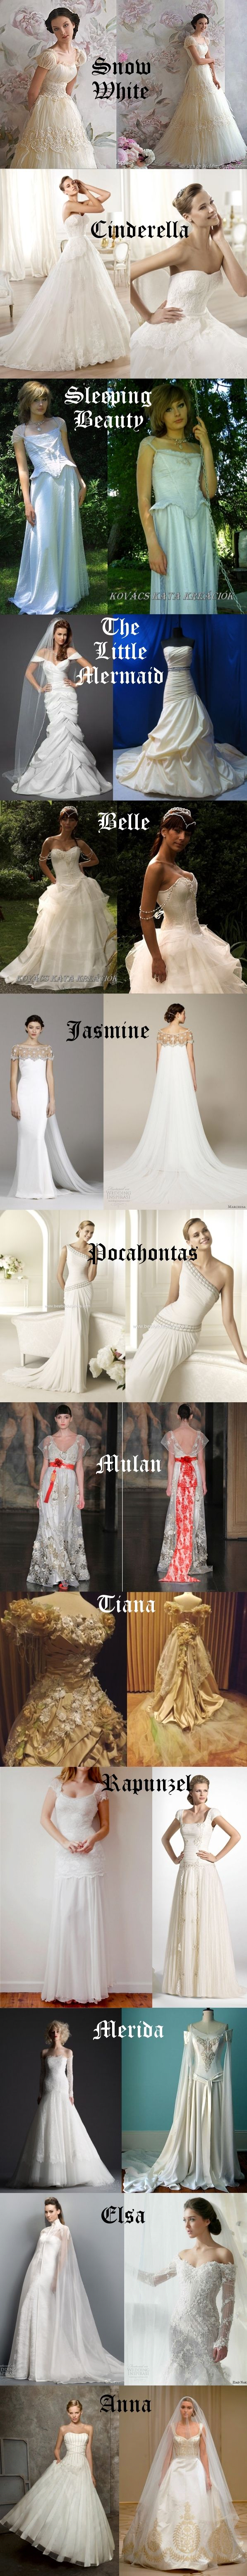 Disney princess wedding dress ideas. Realistic & wearable Disney princess wedding dresses inspiration for all the princesses.